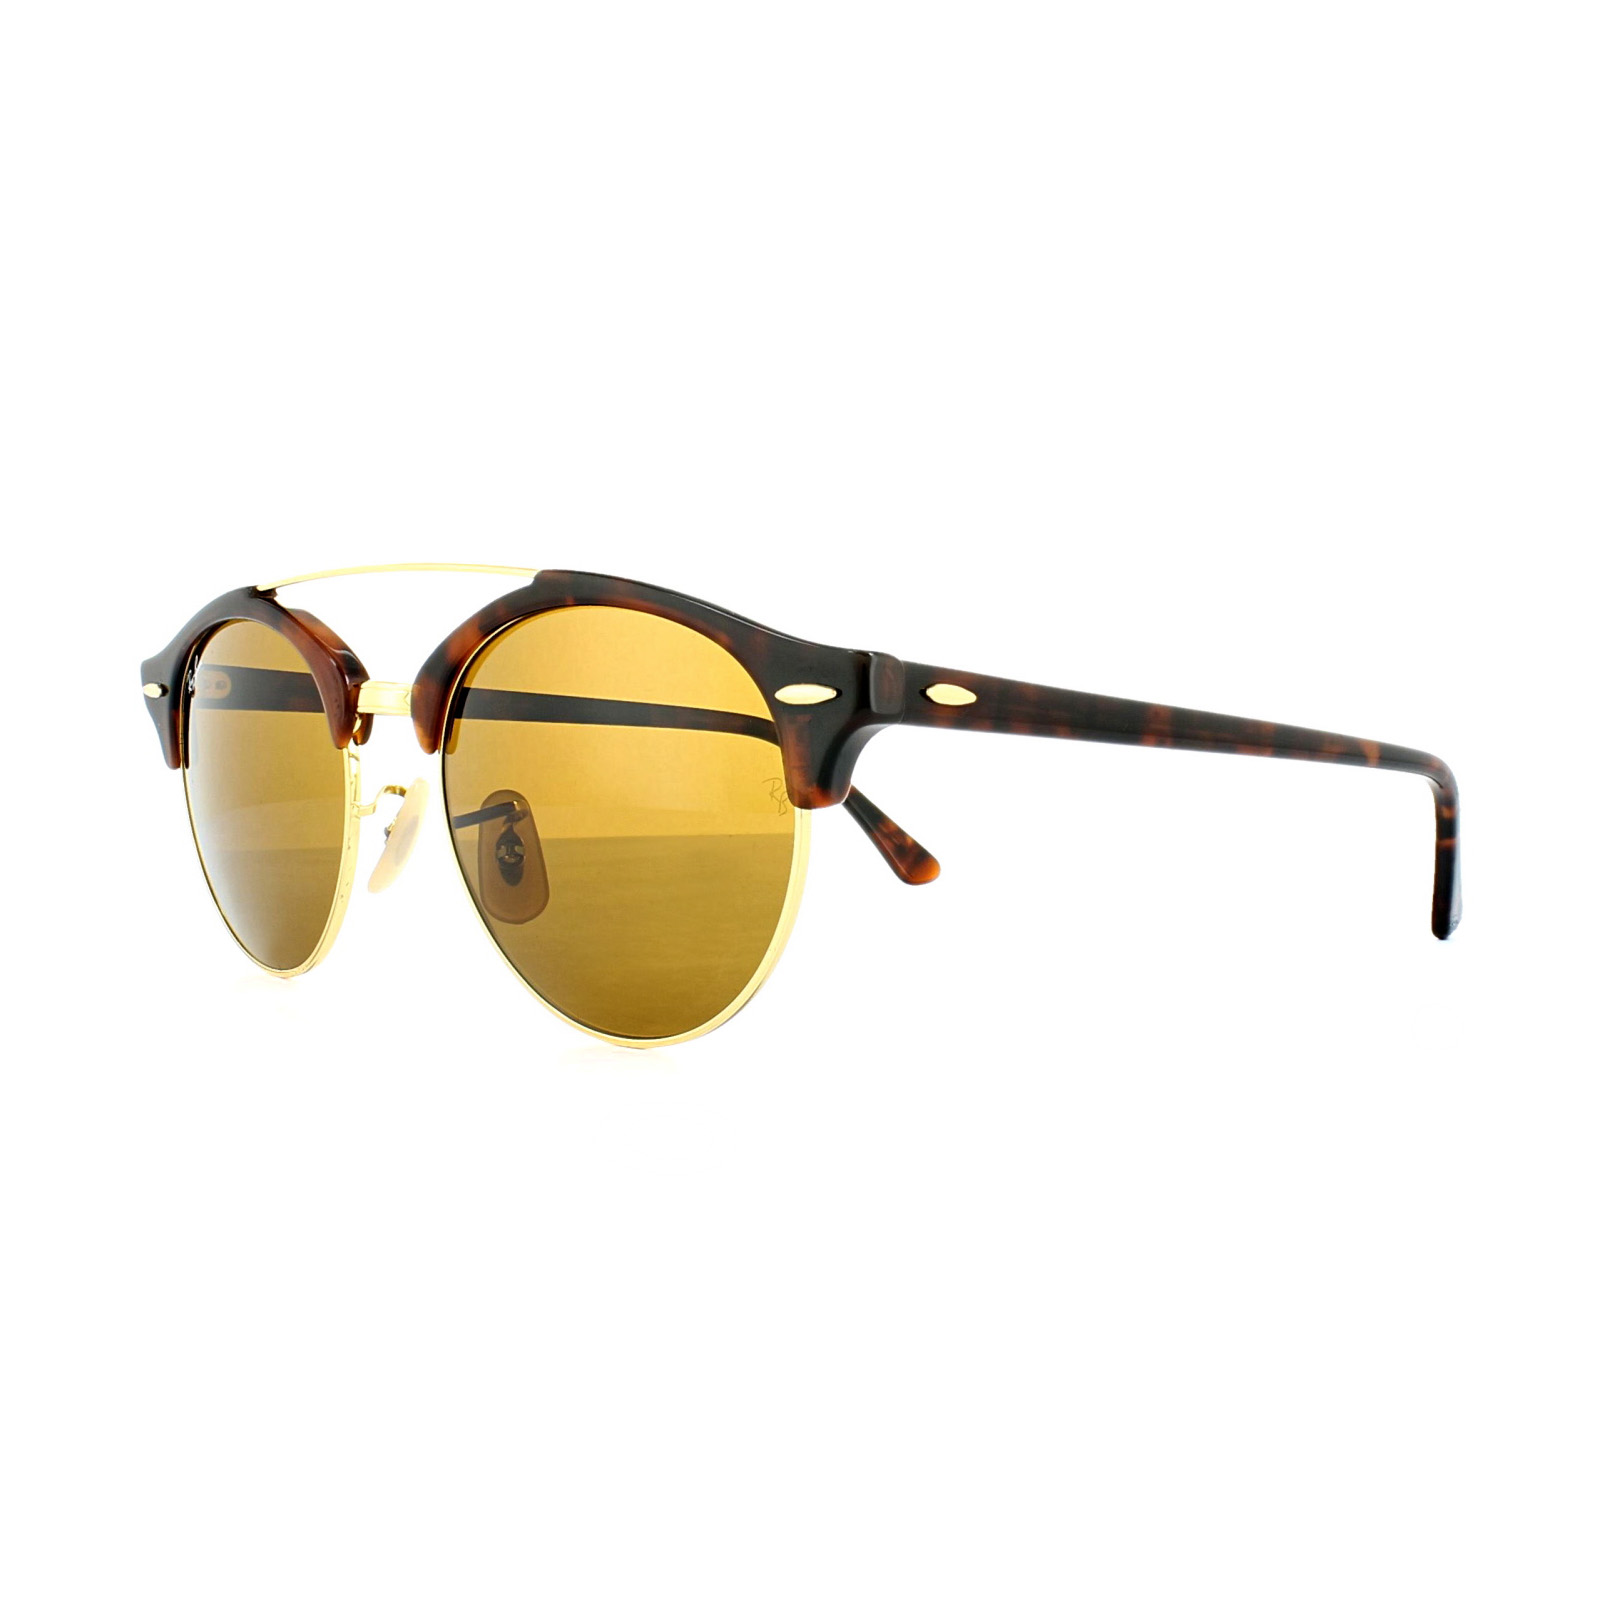 RAY BAN Sonnenbrille Clubround Double Bridge RB4346 51 braun tKDKhcx4aq